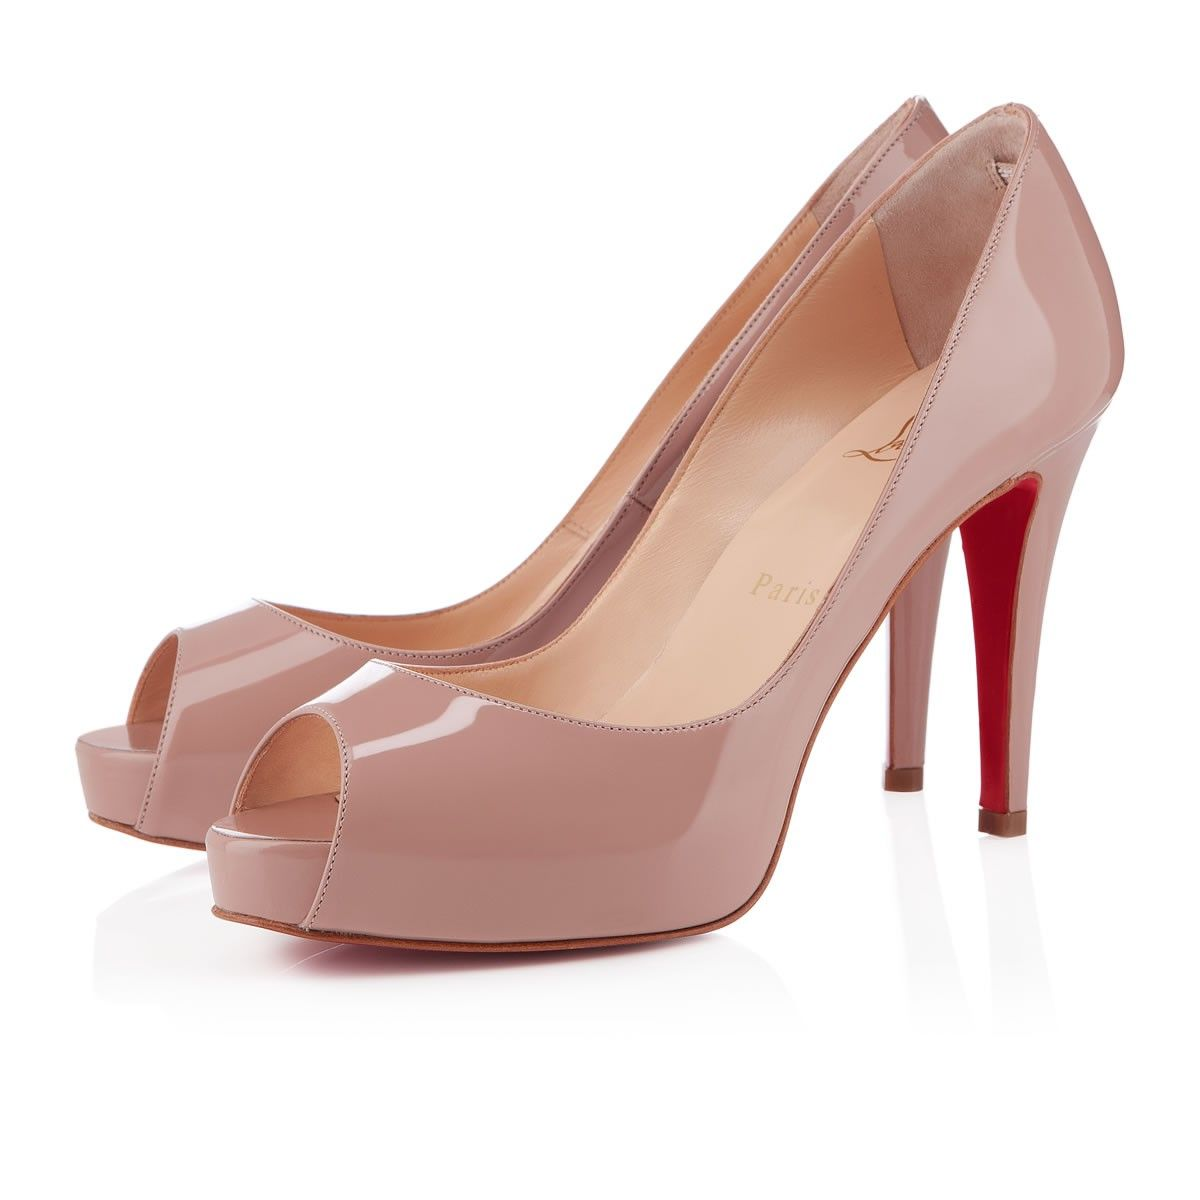 2facda41820 Christian Louboutin Very Prive 100mm Peep Toe Pumps Nude | I like in ...